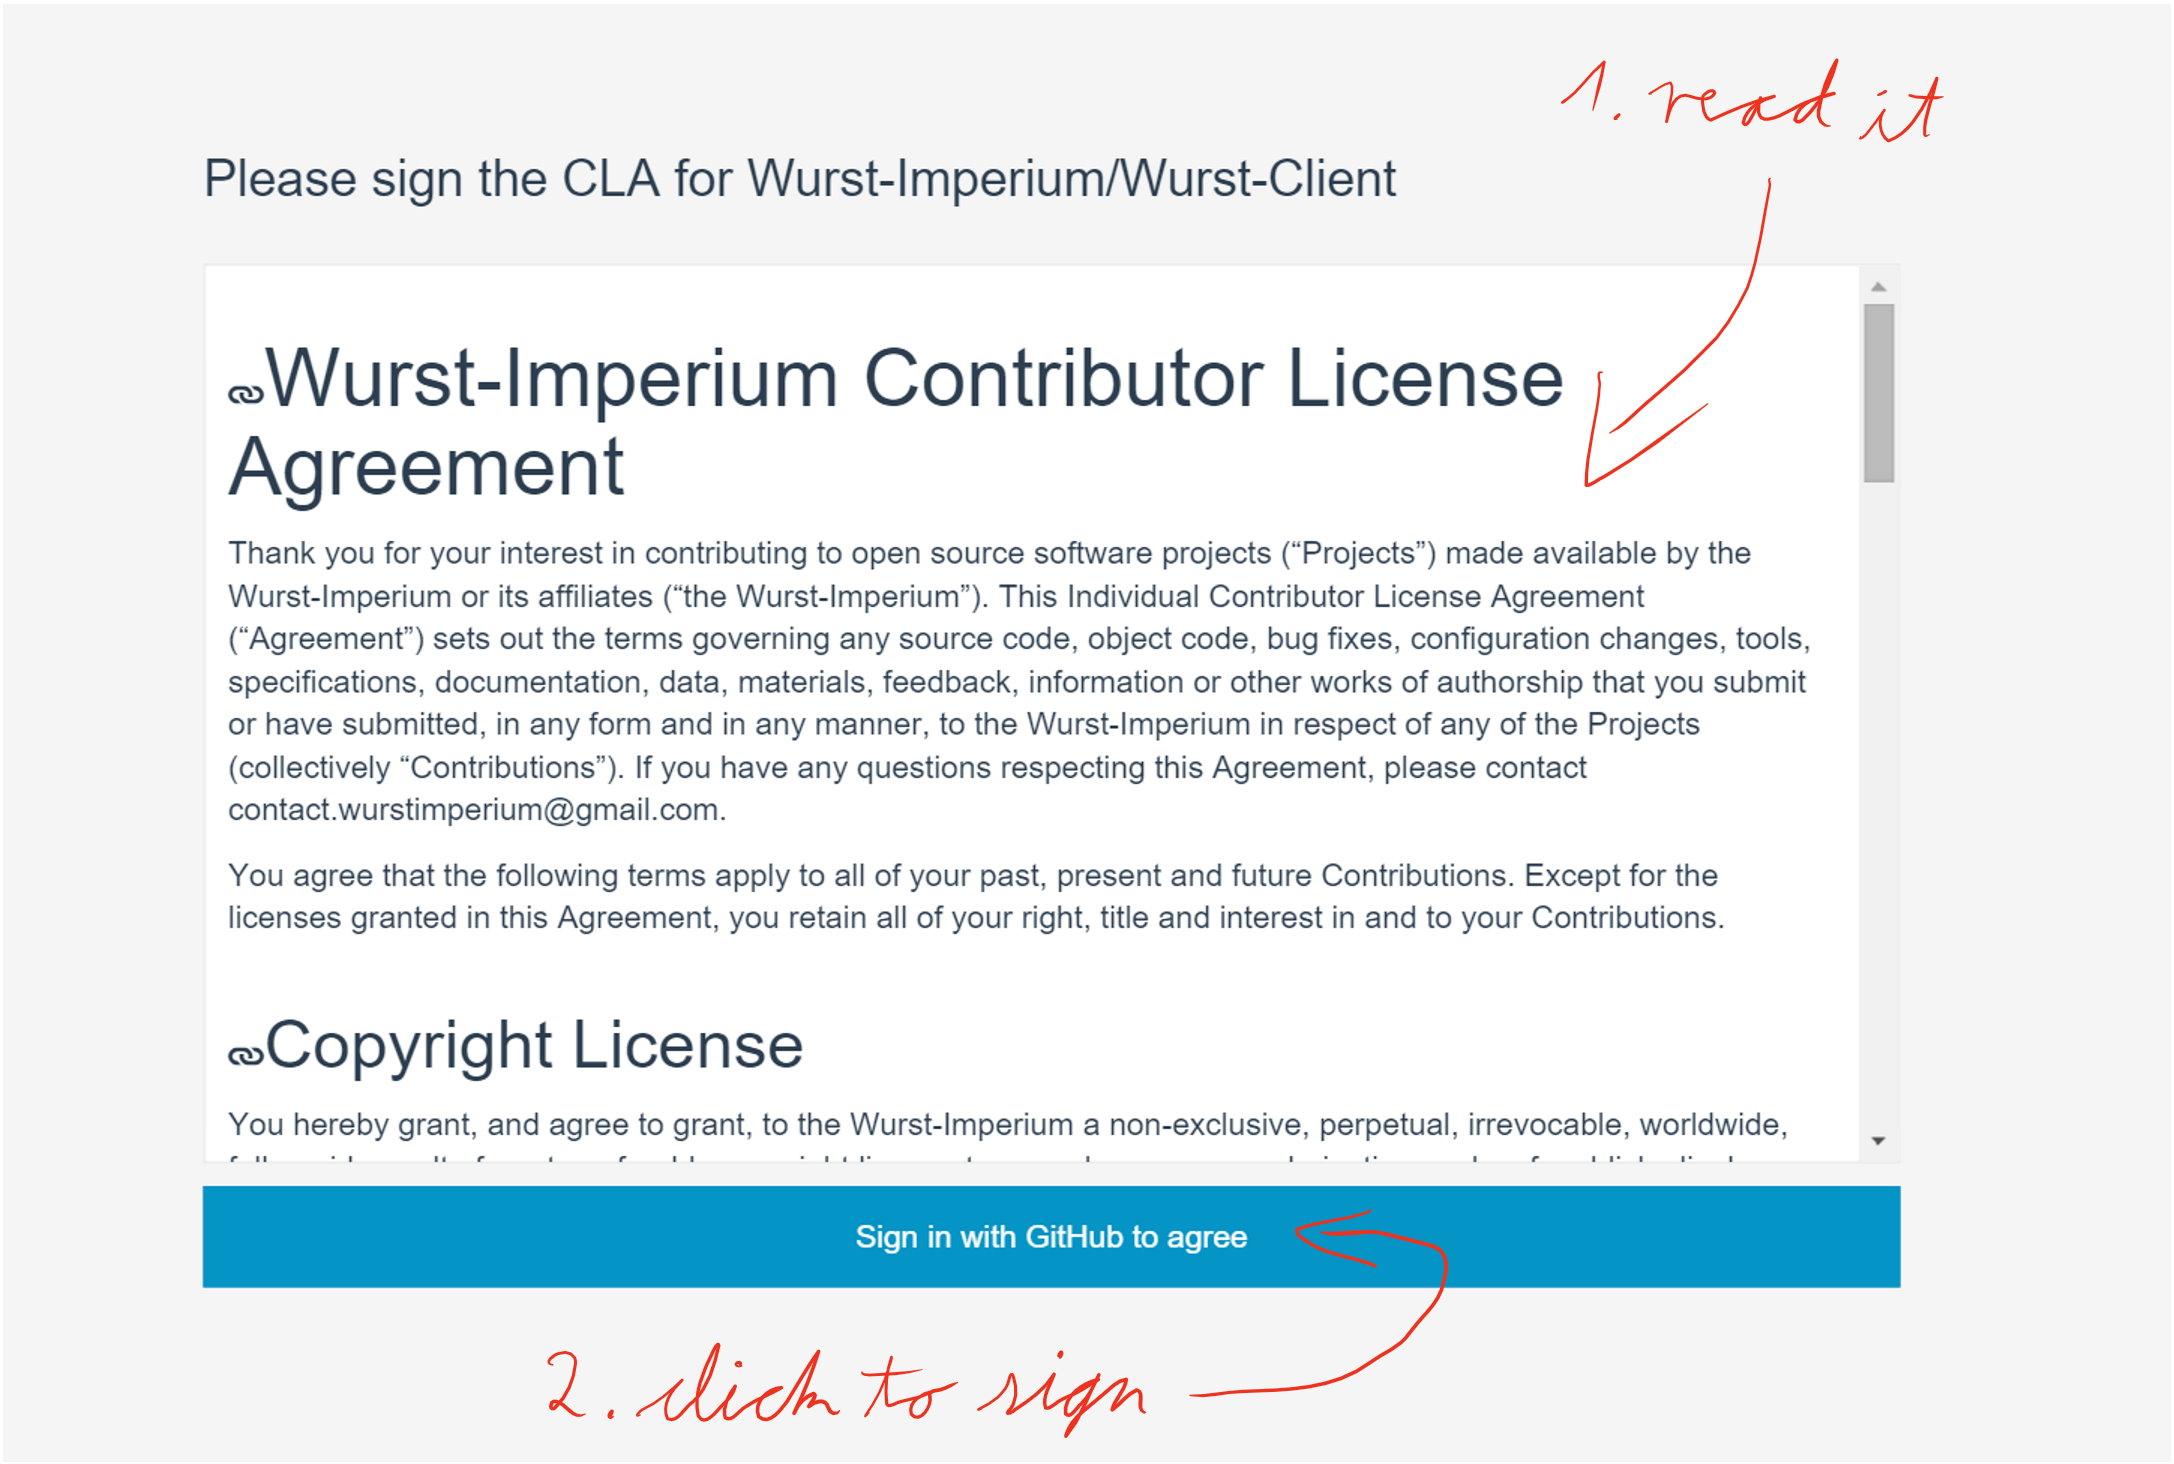 Contributor License Agreement of Wurst-Imperium/Wurst-Client